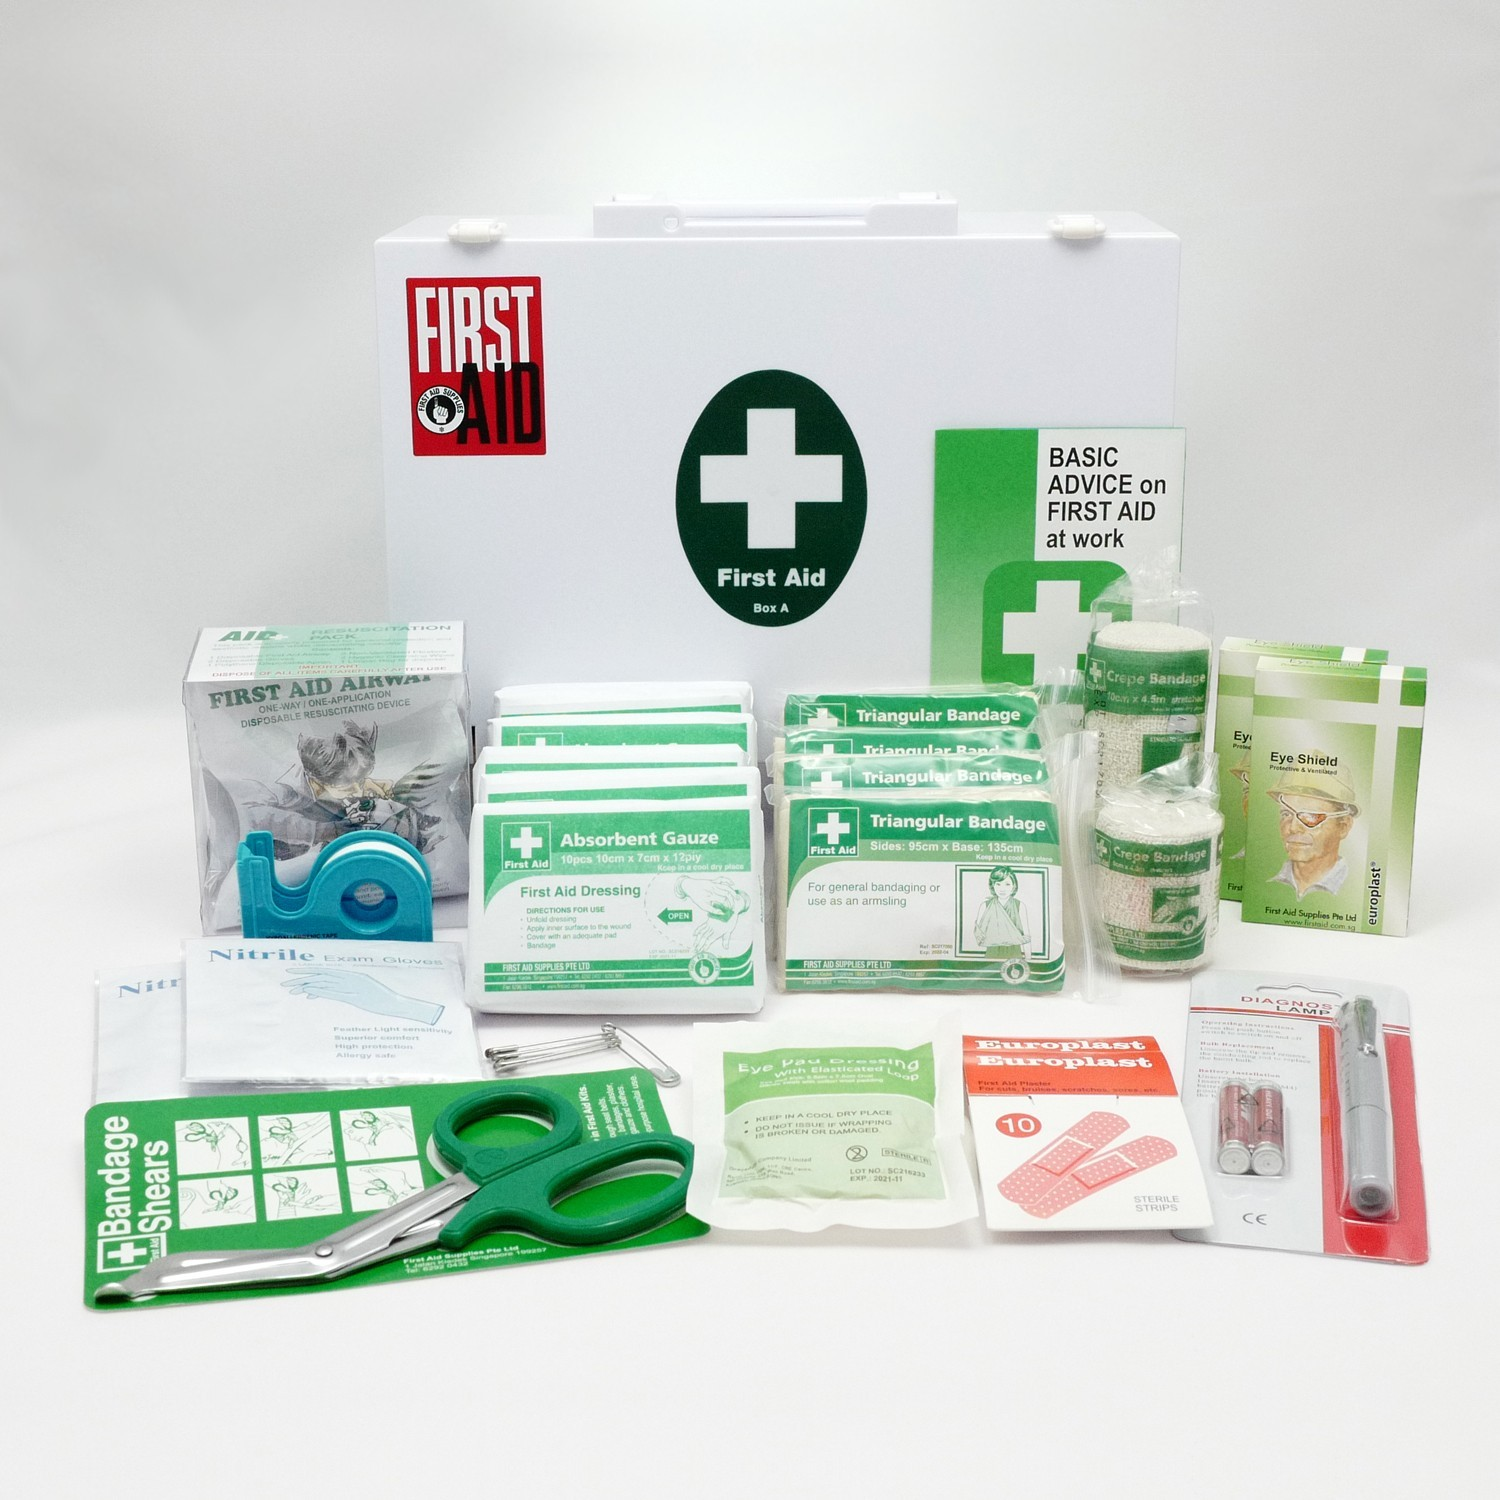 First-aid kit is a necessary thing in the company and in the office. What should be part of the first aid kit